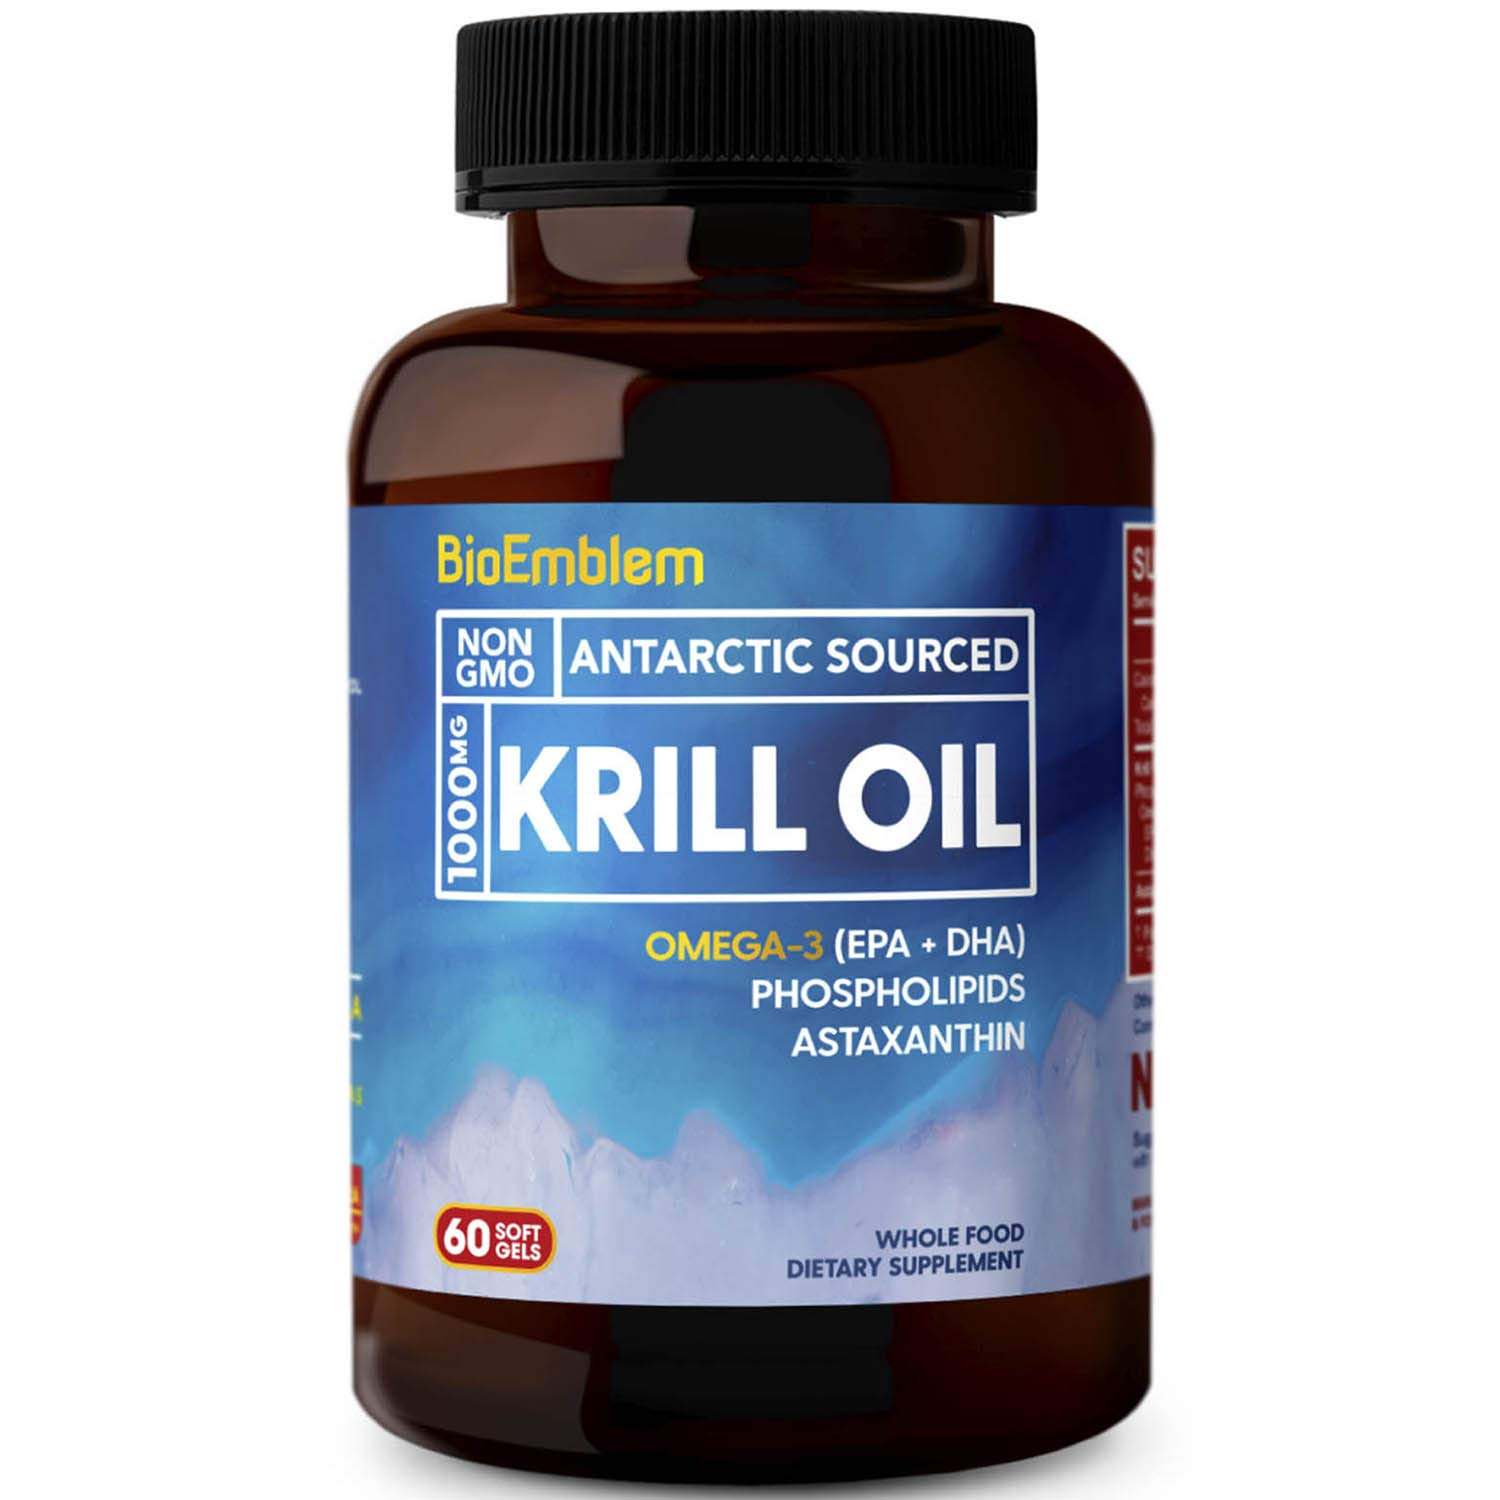 BioEmblem Antarctic Krill Oil Supplement | 1000mg | Omega-3 Oil with High Levels of EPA + DHA, Astaxanthin, and Phospholipids | No Fishy Aftertaste | 60-Count Non-GMO Softgels by BioEmblem